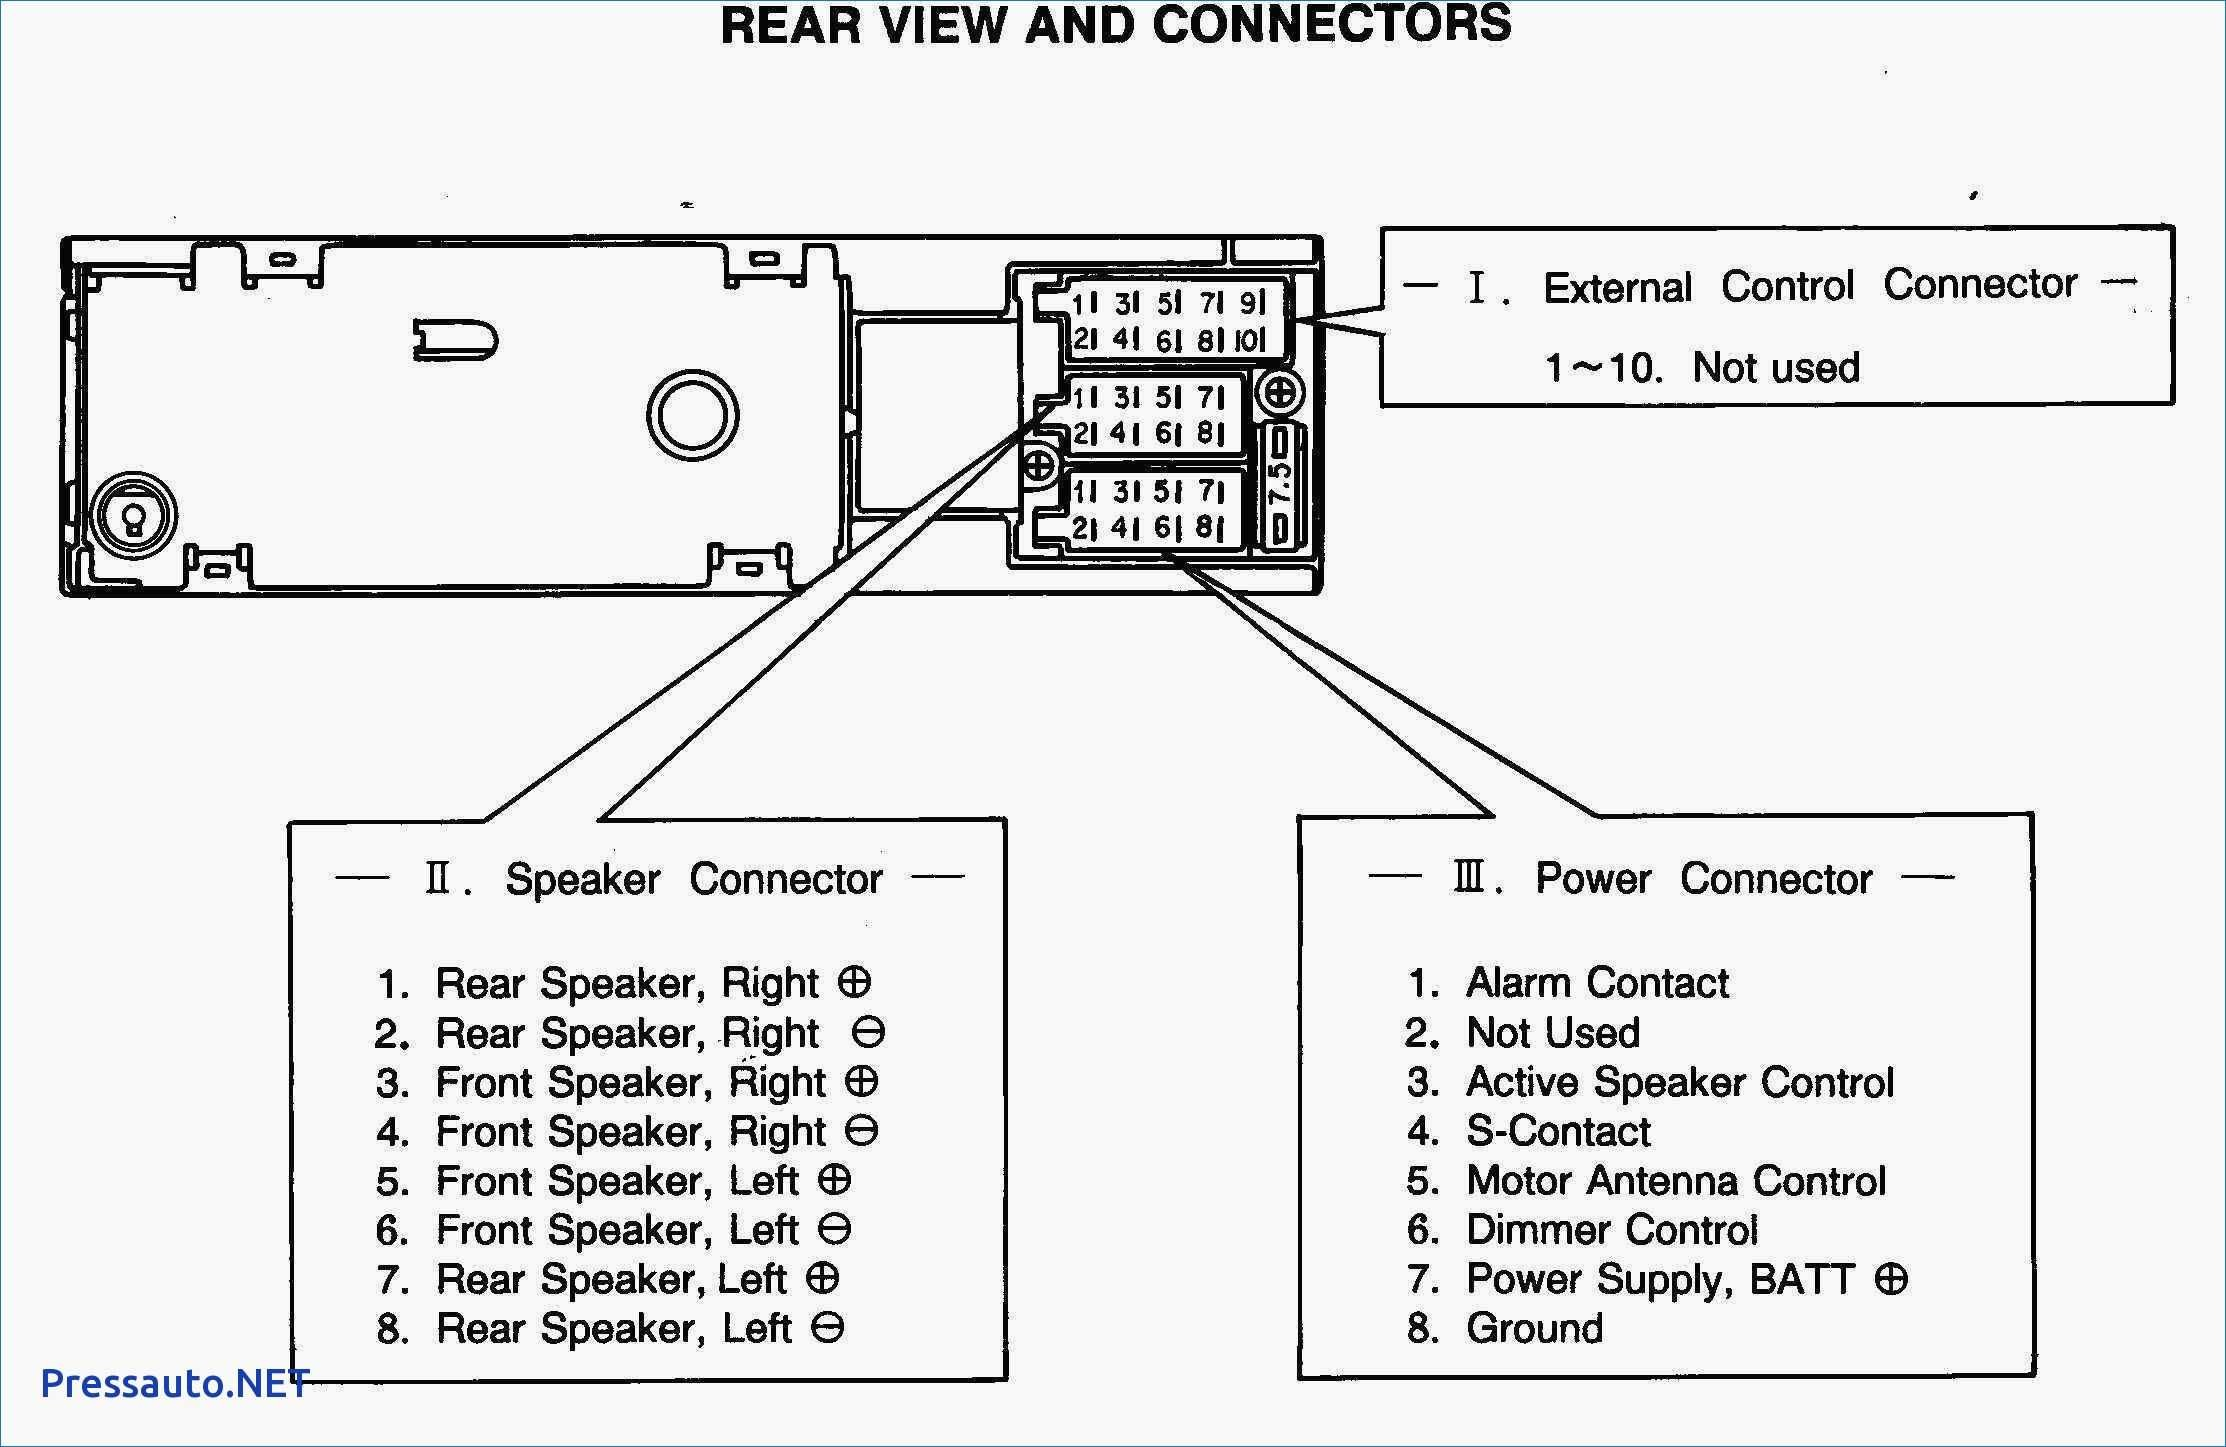 8 Pin Wiring Diagram Din Services Wiper Motor On Cd Changer Wire Rh Beinclover Co Speaker Mini